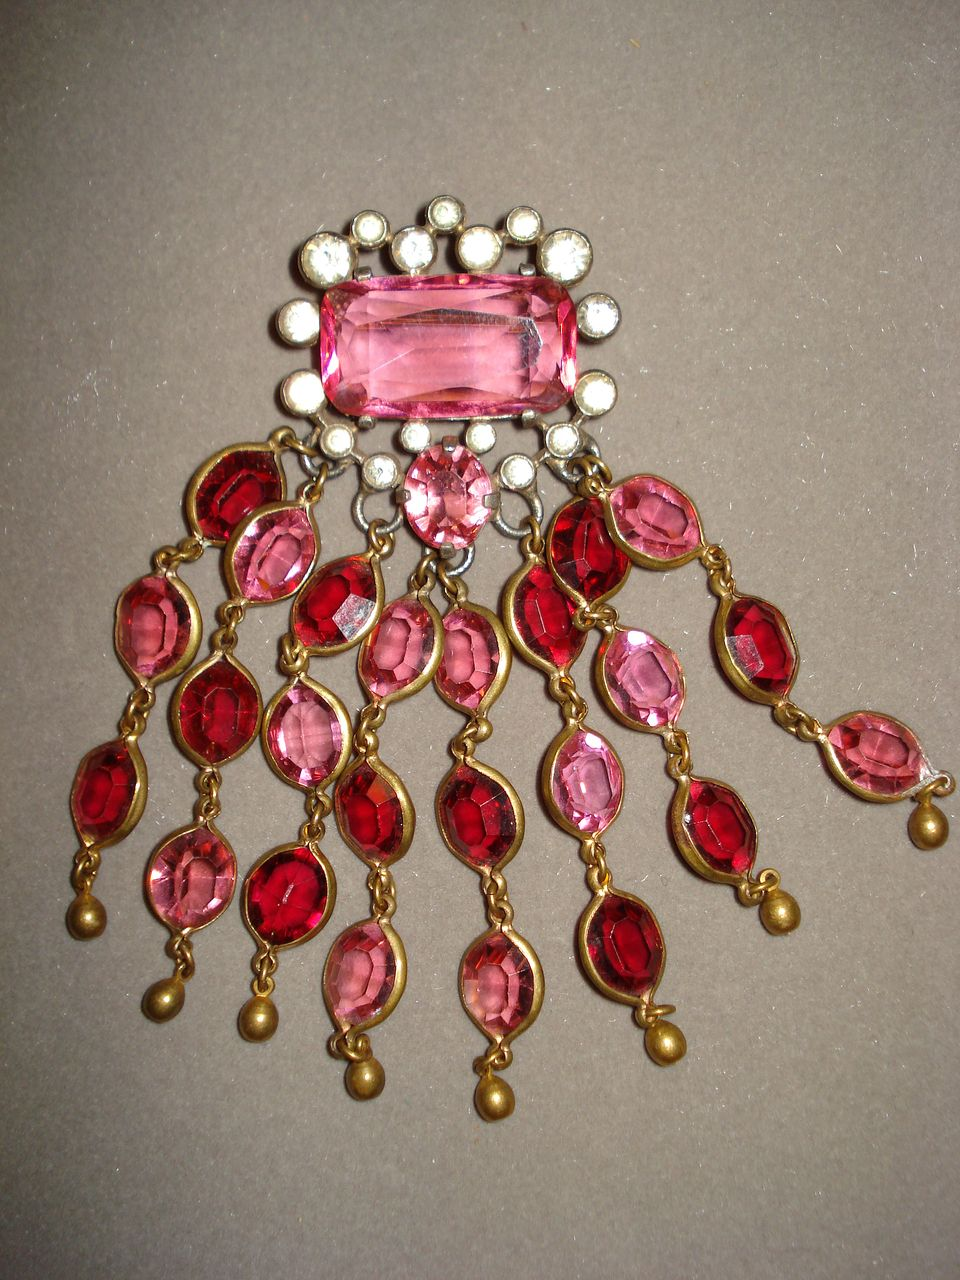 Unmarked Eisenberg Original Brooch with Dangles